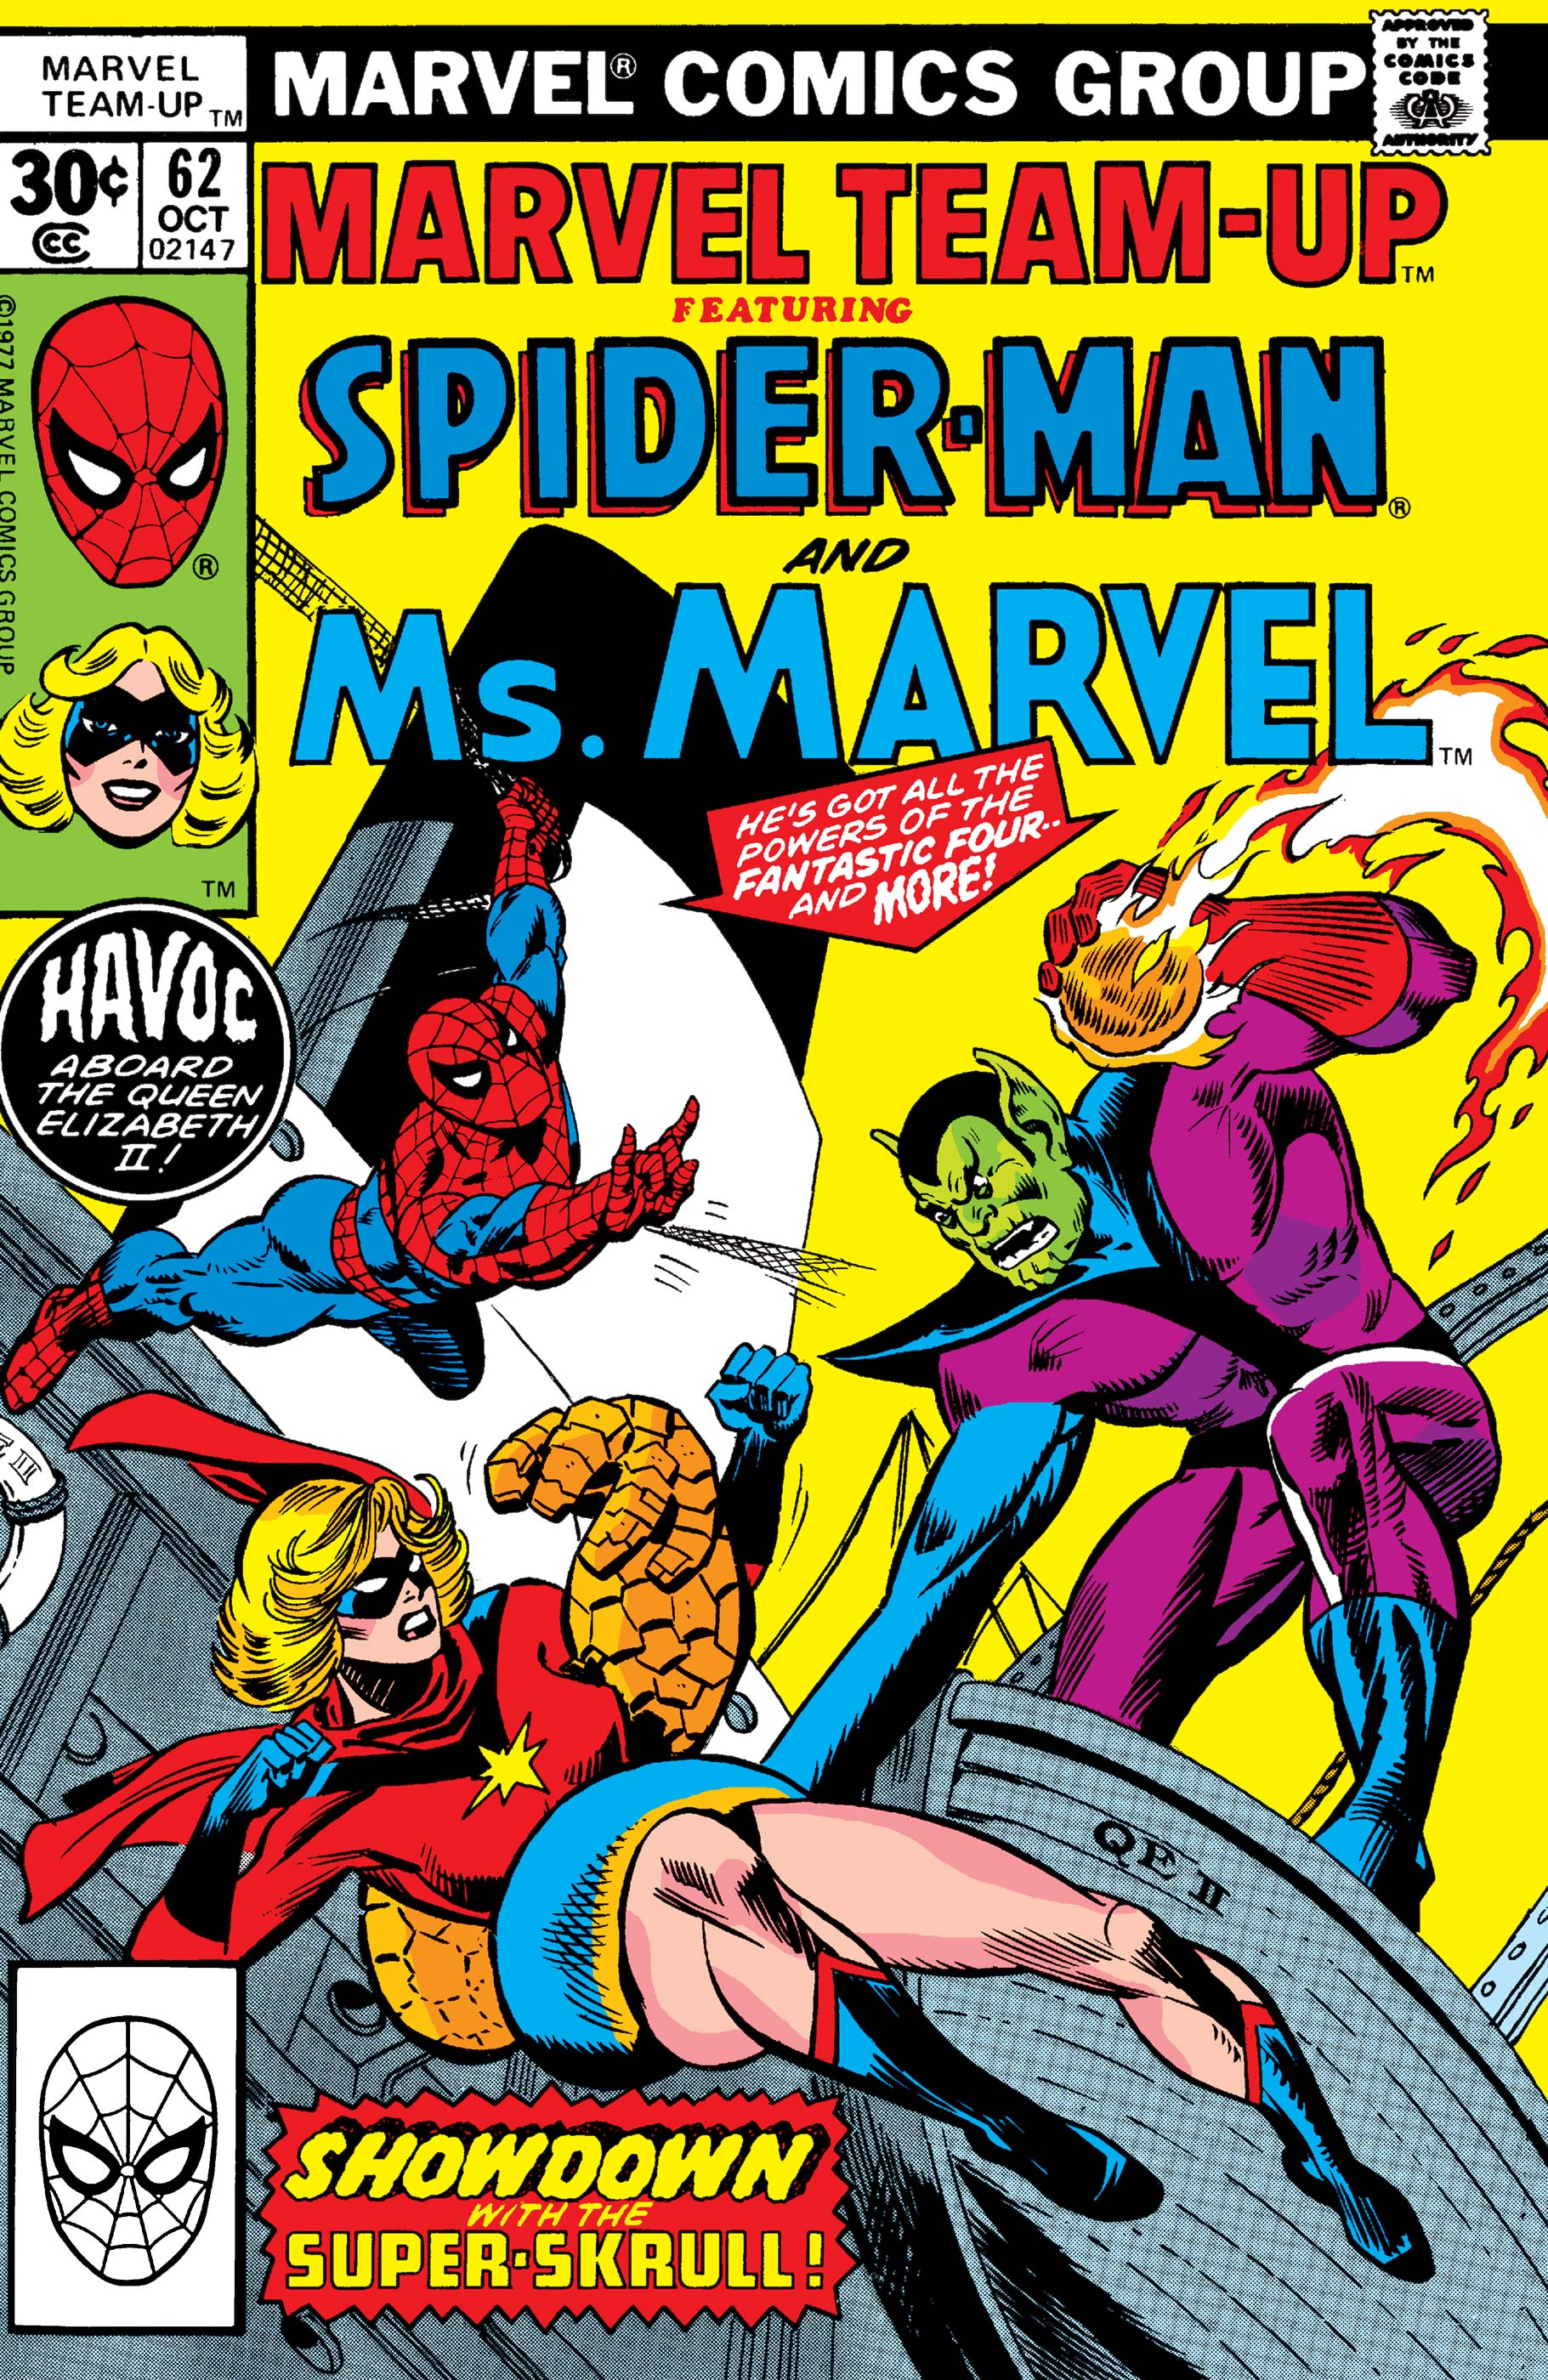 Marvel Team-Up (1972) #62